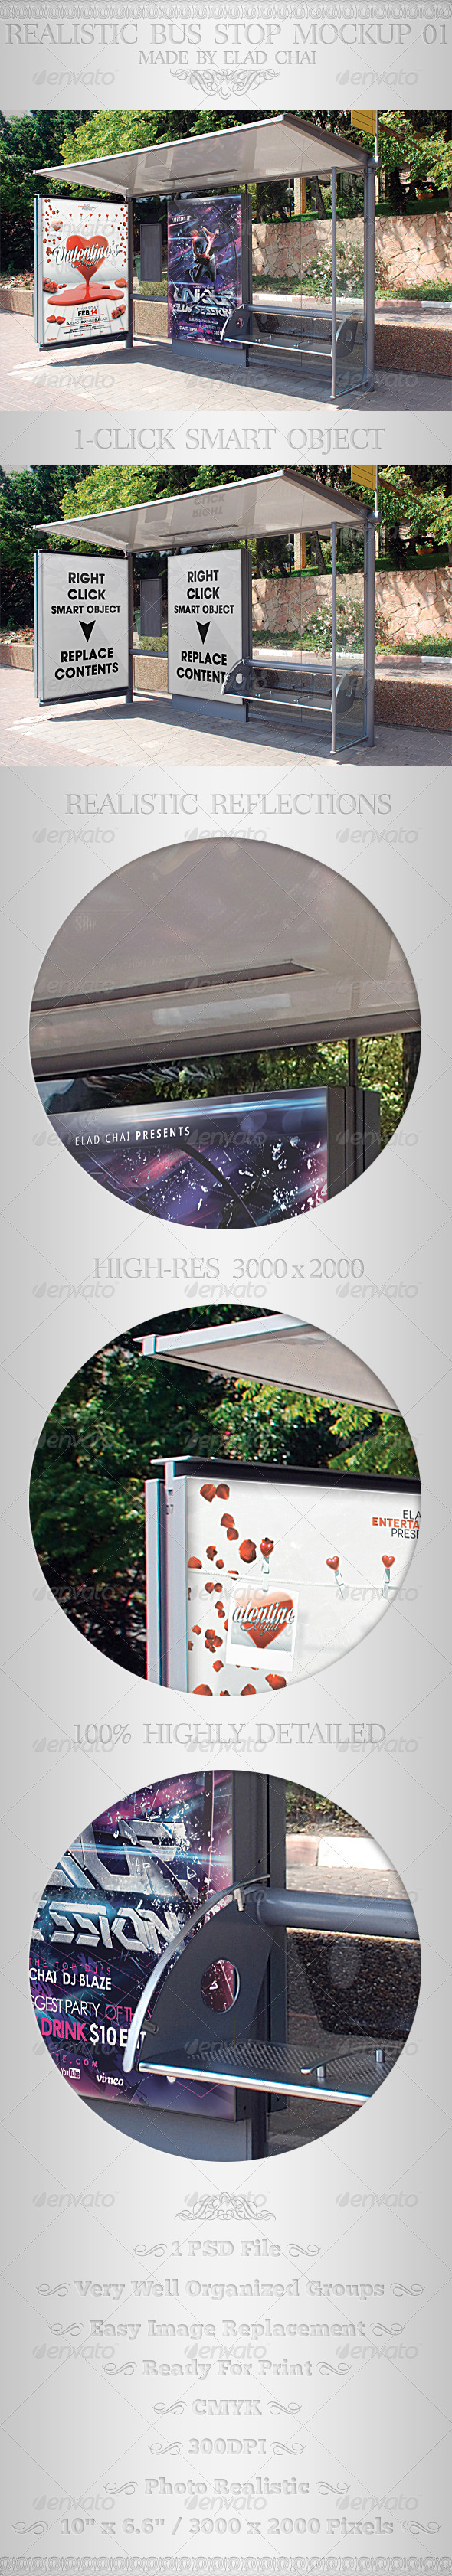 Realistic Bus Stop Flyer Poster Mockup 01 - Signage Print